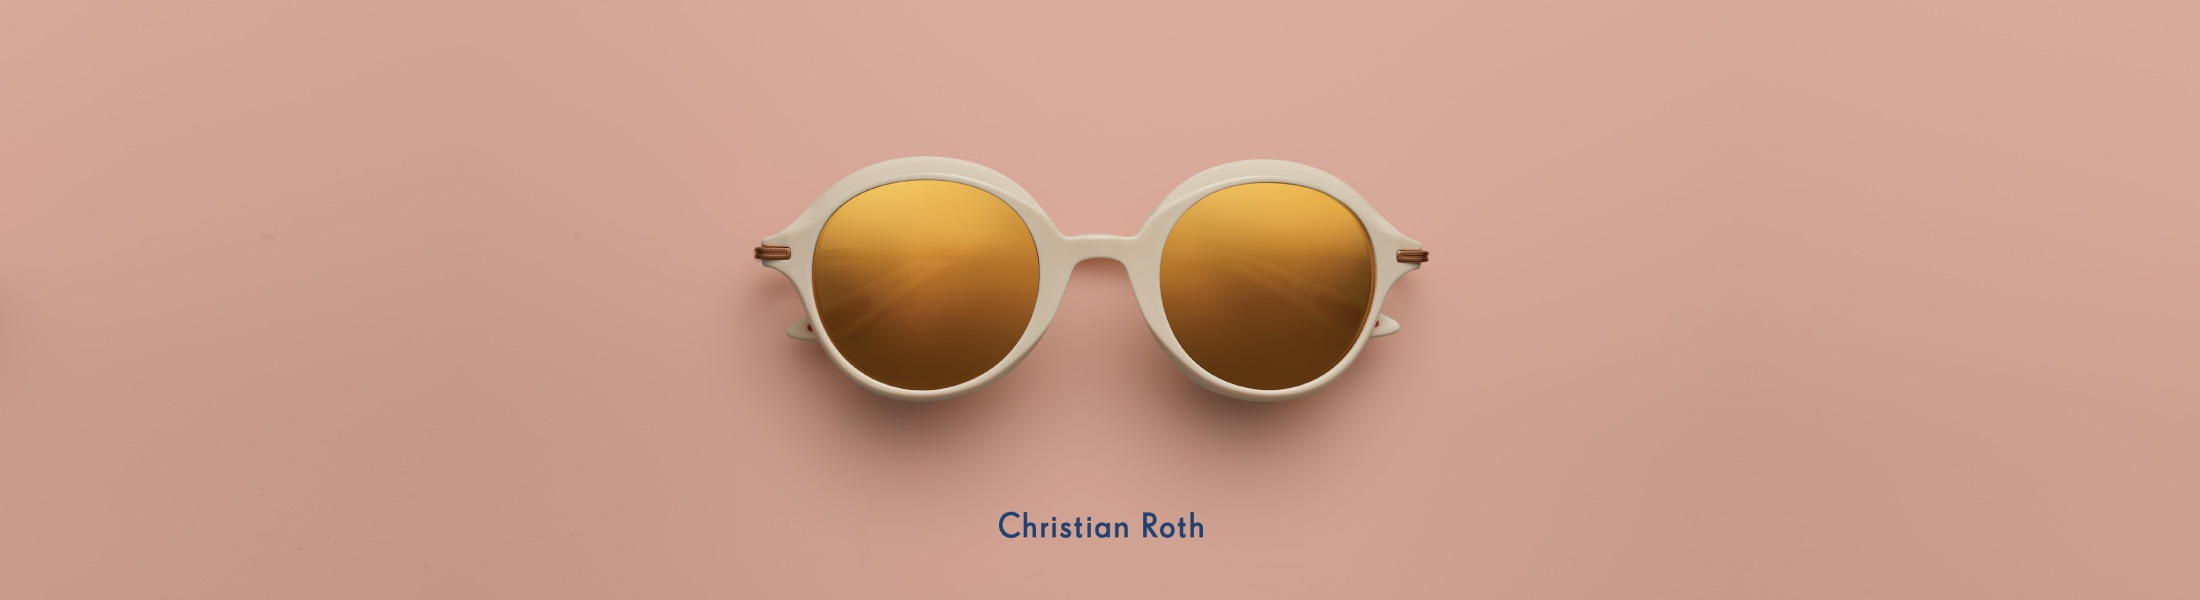 christian roth